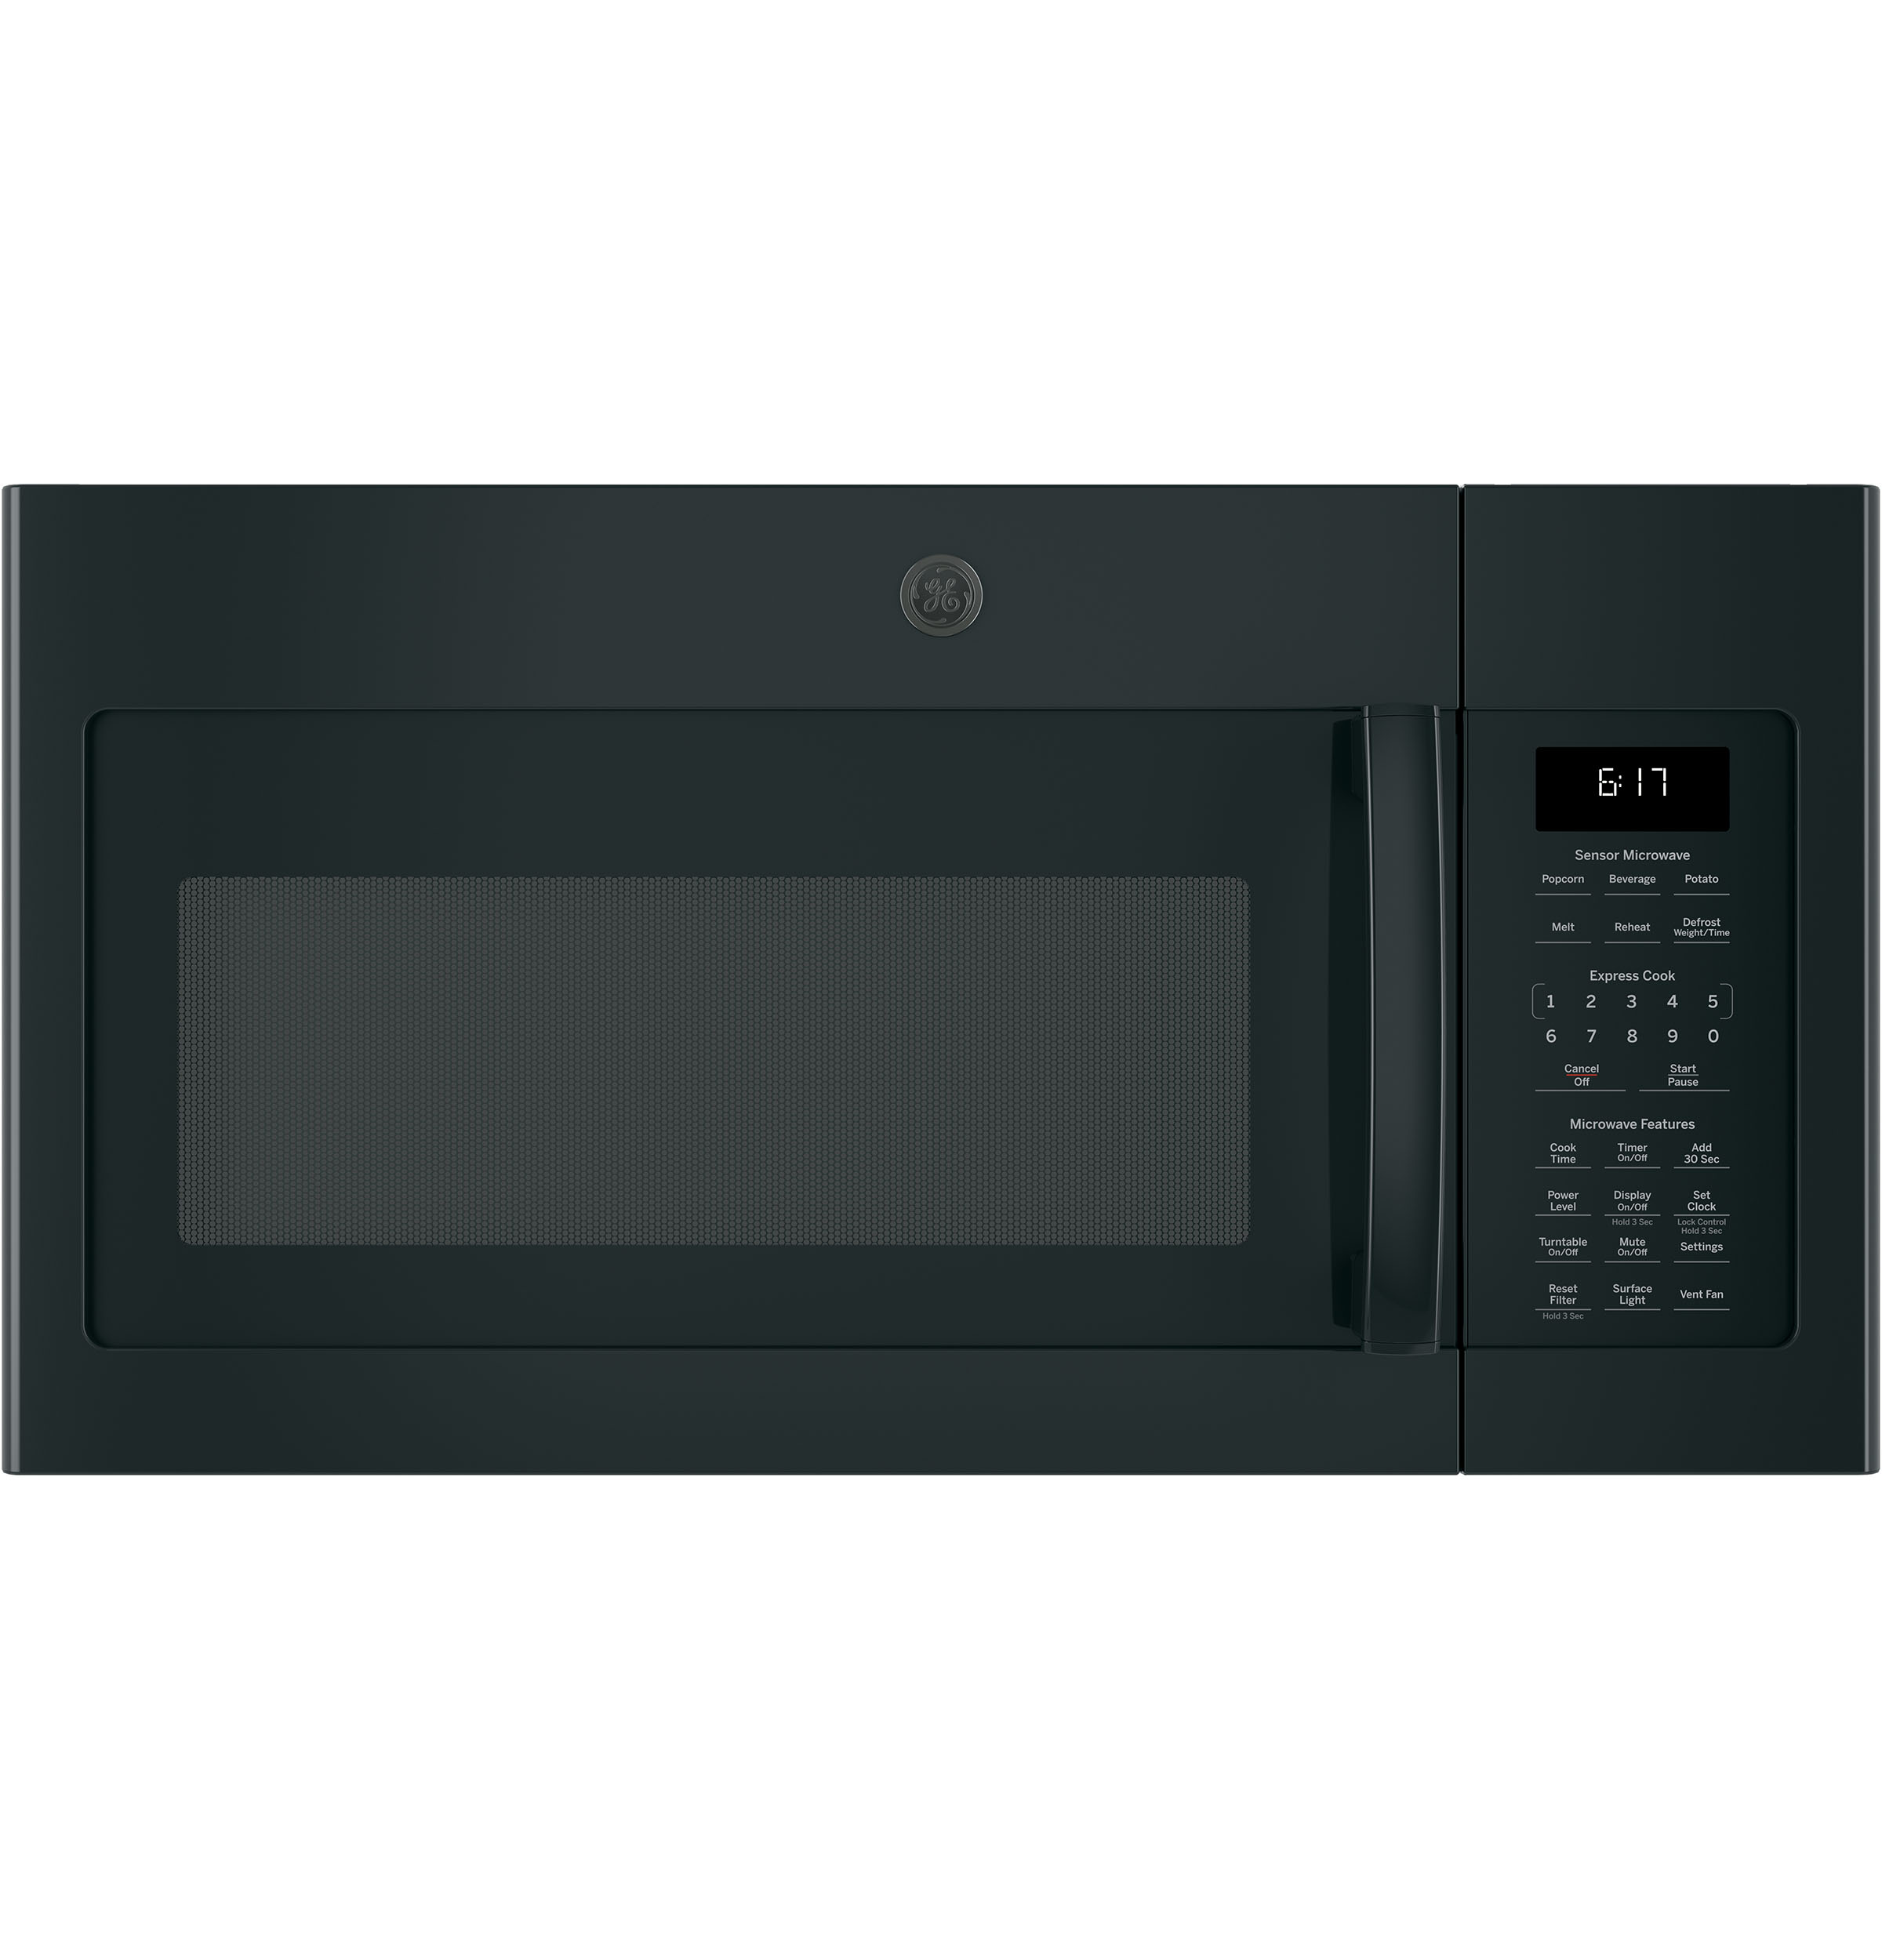 GE® 1 7 Cu  Ft  Over-the-Range Sensor Microwave Oven | JVM6175DKBB